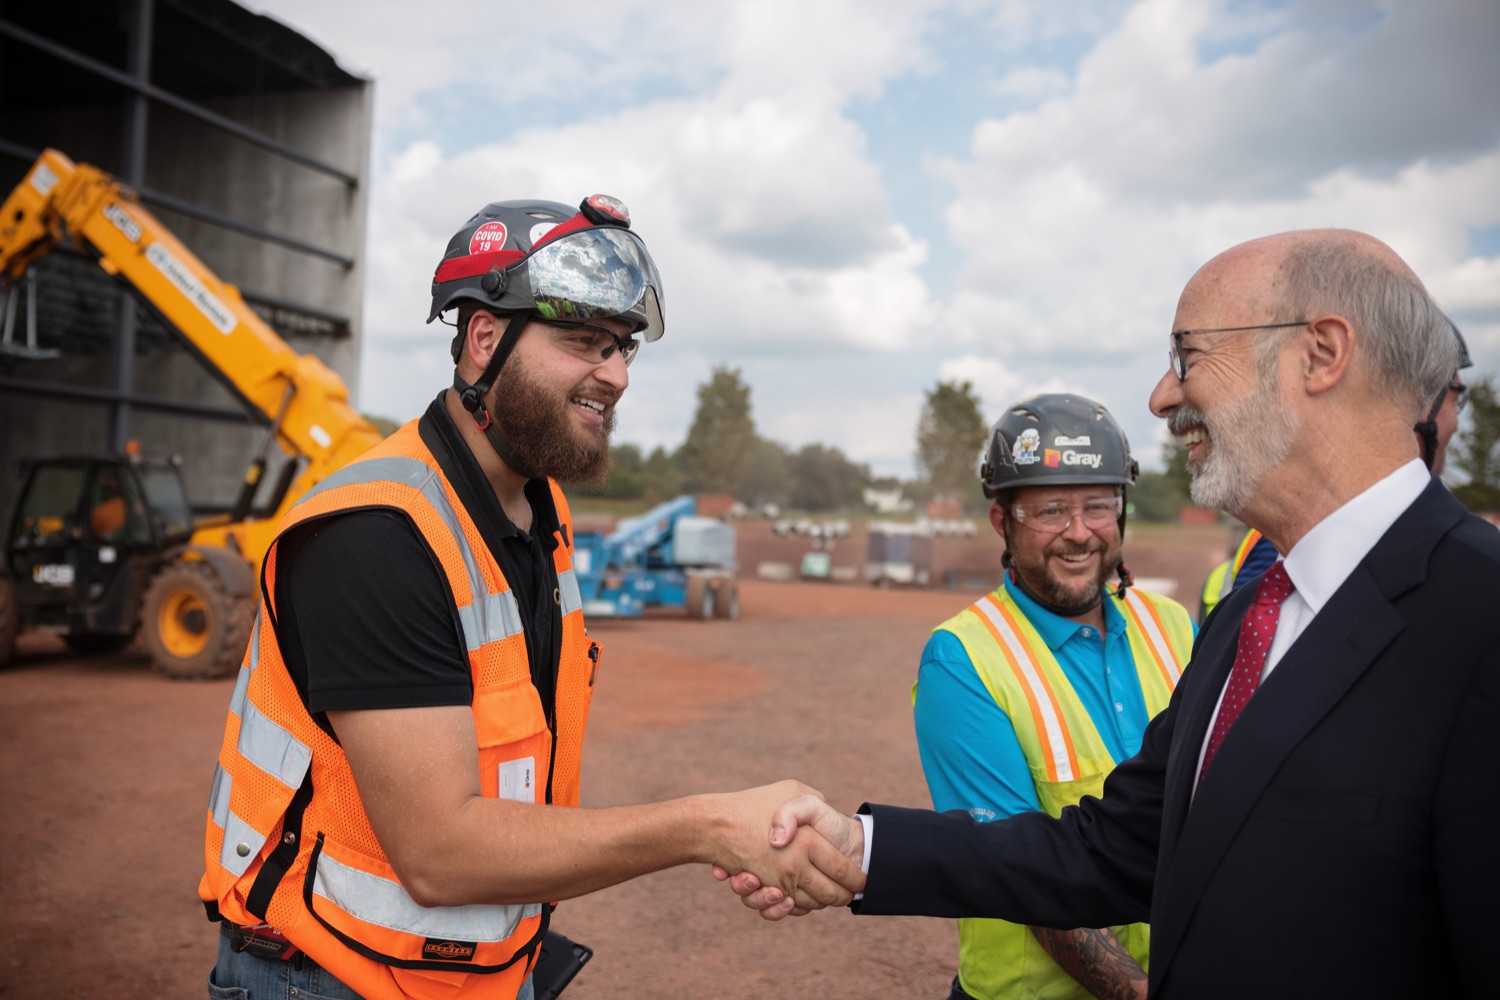 """<a href=""""https://filesource.wostreaming.net/commonwealthofpa/photo/20126_gov_economicDevelopment_dz_004.jpg"""" target=""""_blank"""">⇣Download Photo<br></a>Pennsylvania Governor Tom Wolf greeting construction workers as he tours the site.  Governor Tom Wolf joined Clemens Food Group leaders, Agriculture Secretary Russell Redding, Sen. Maria Collett, Rep. Steve Malagari and members of the Governors Action Team today to tour the construction of the companys new facility in Montgomery County. The Wolf Administration supported the project which will expand the business operations and create new jobs in the region. Hatfield, PA   October 8, 2021"""